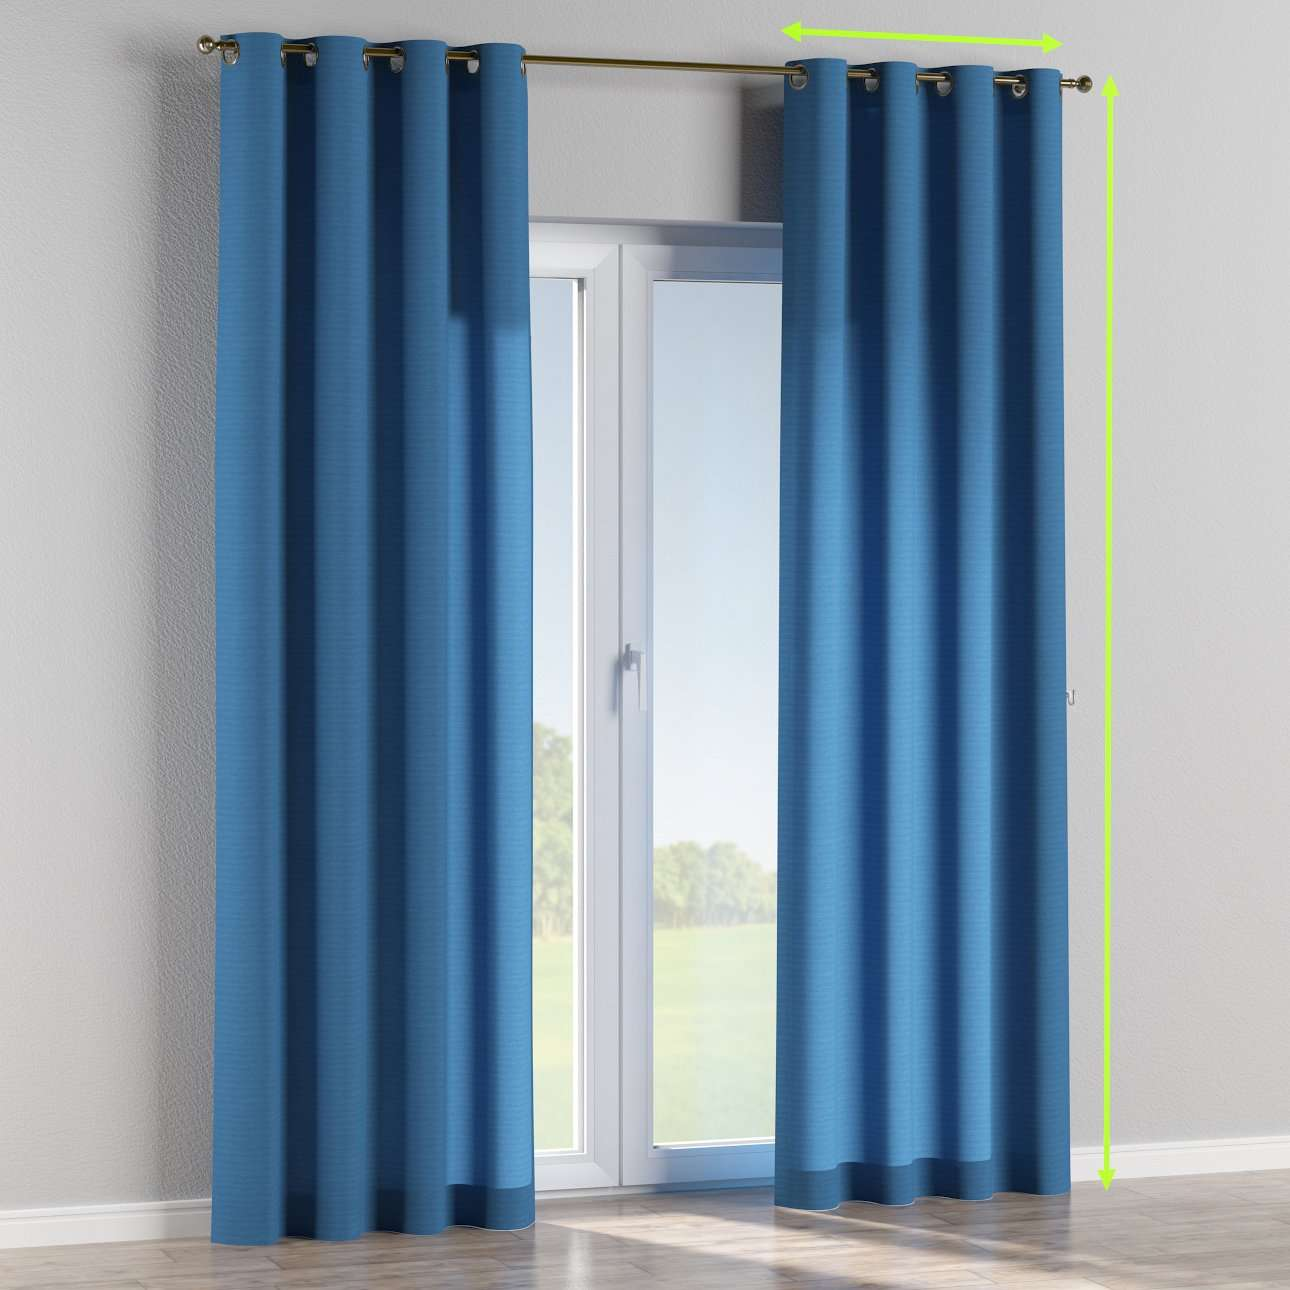 Eyelet curtains in collection Jupiter, fabric: 127-61